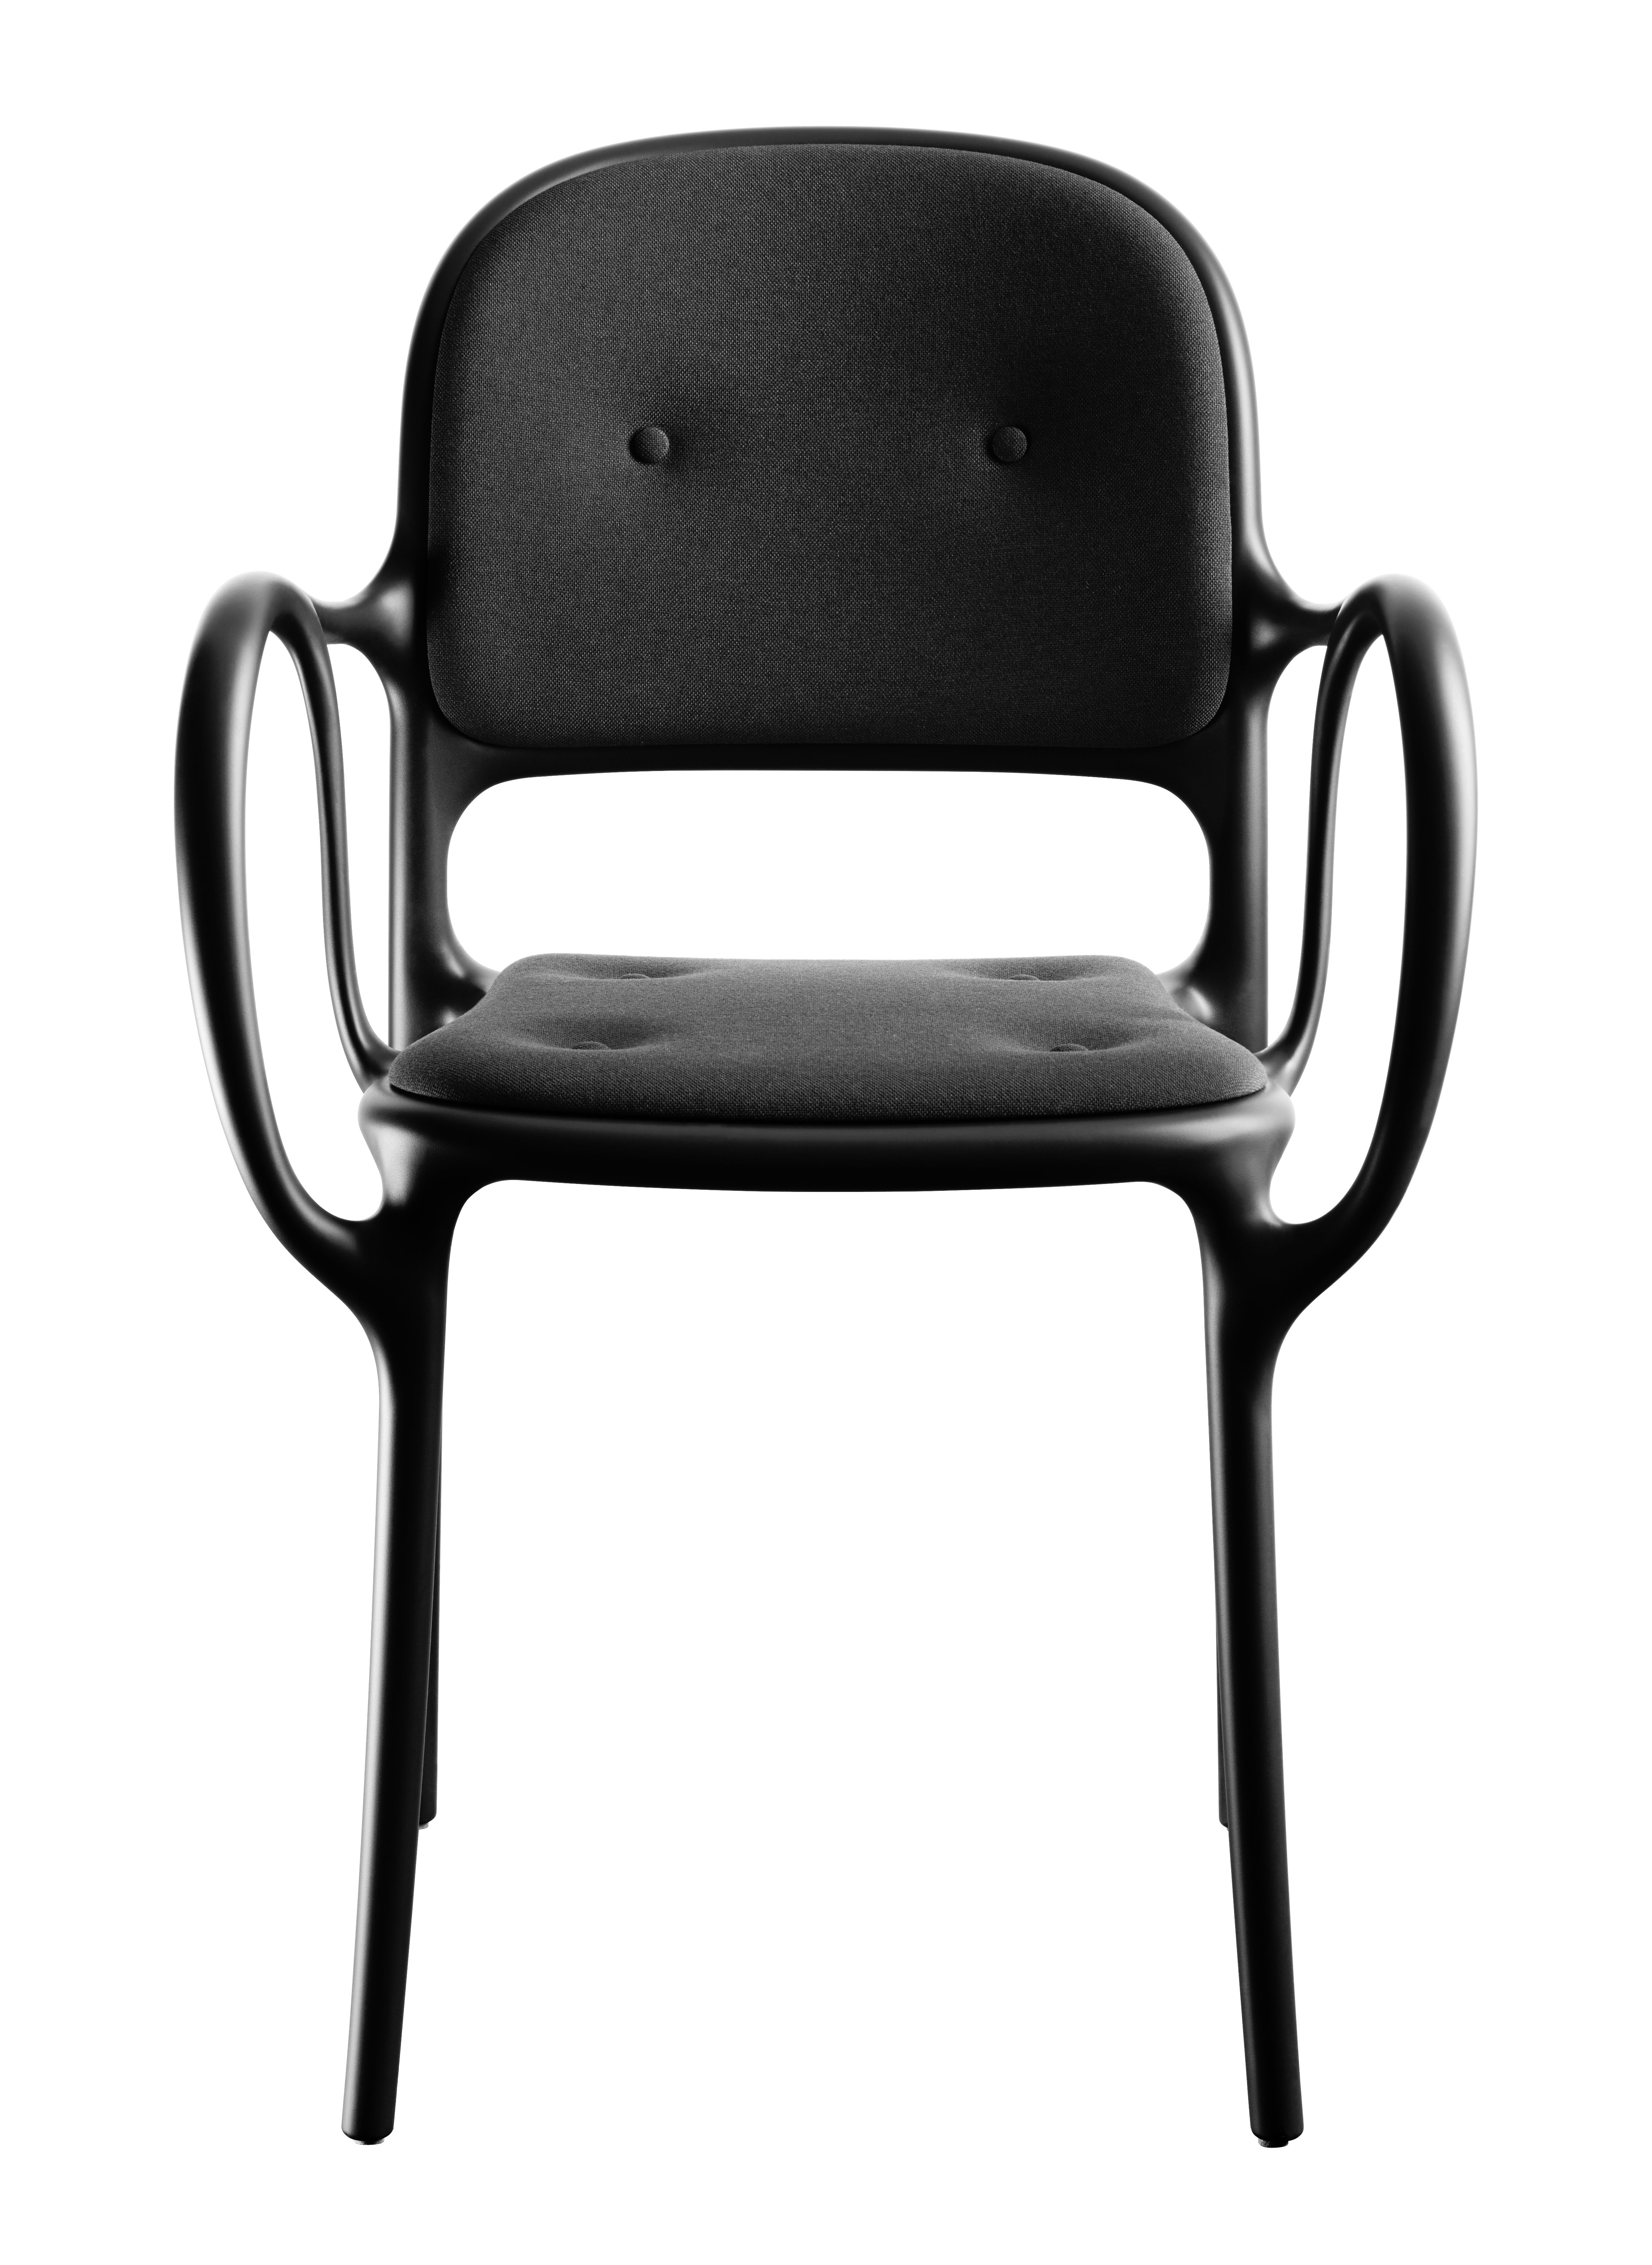 Furniture - Chairs - Milà Padded armchair - Fabric by Magis - Black - Fabric, Polypropylene, Polyurethane